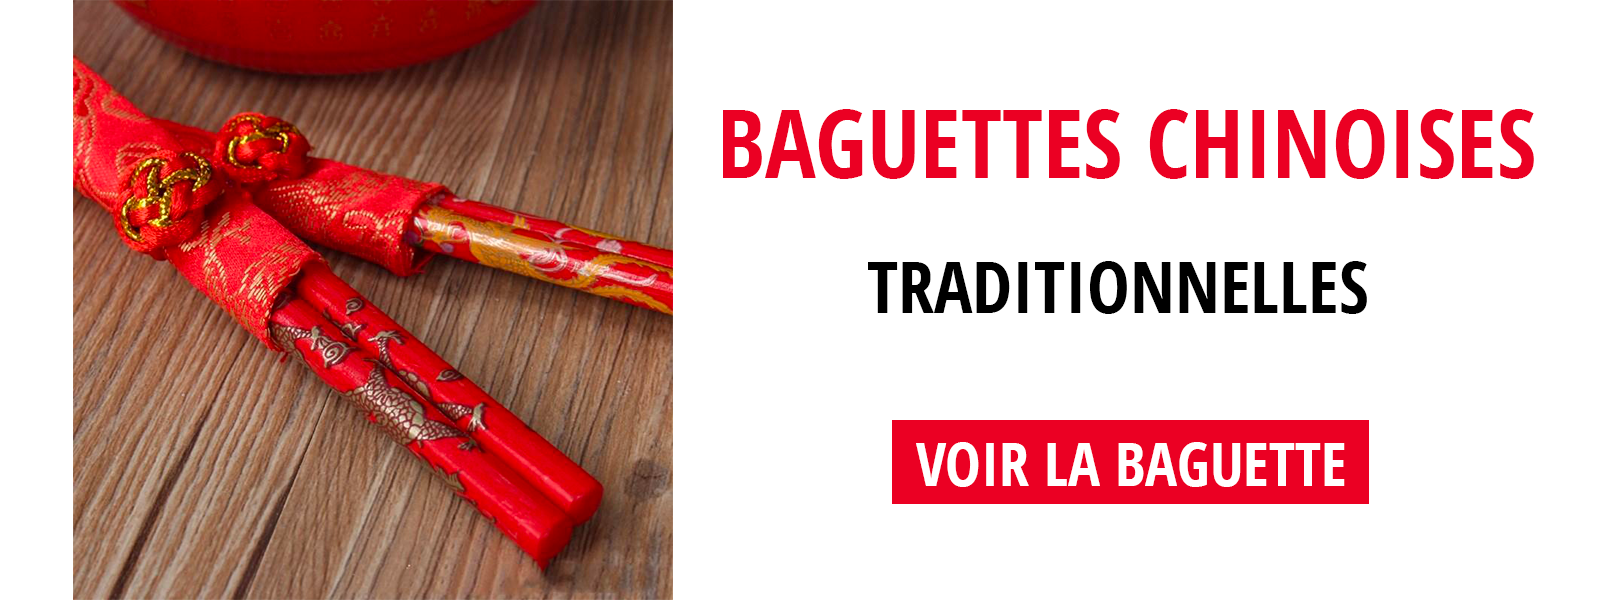 Baguettes Chinoises traditionnelles